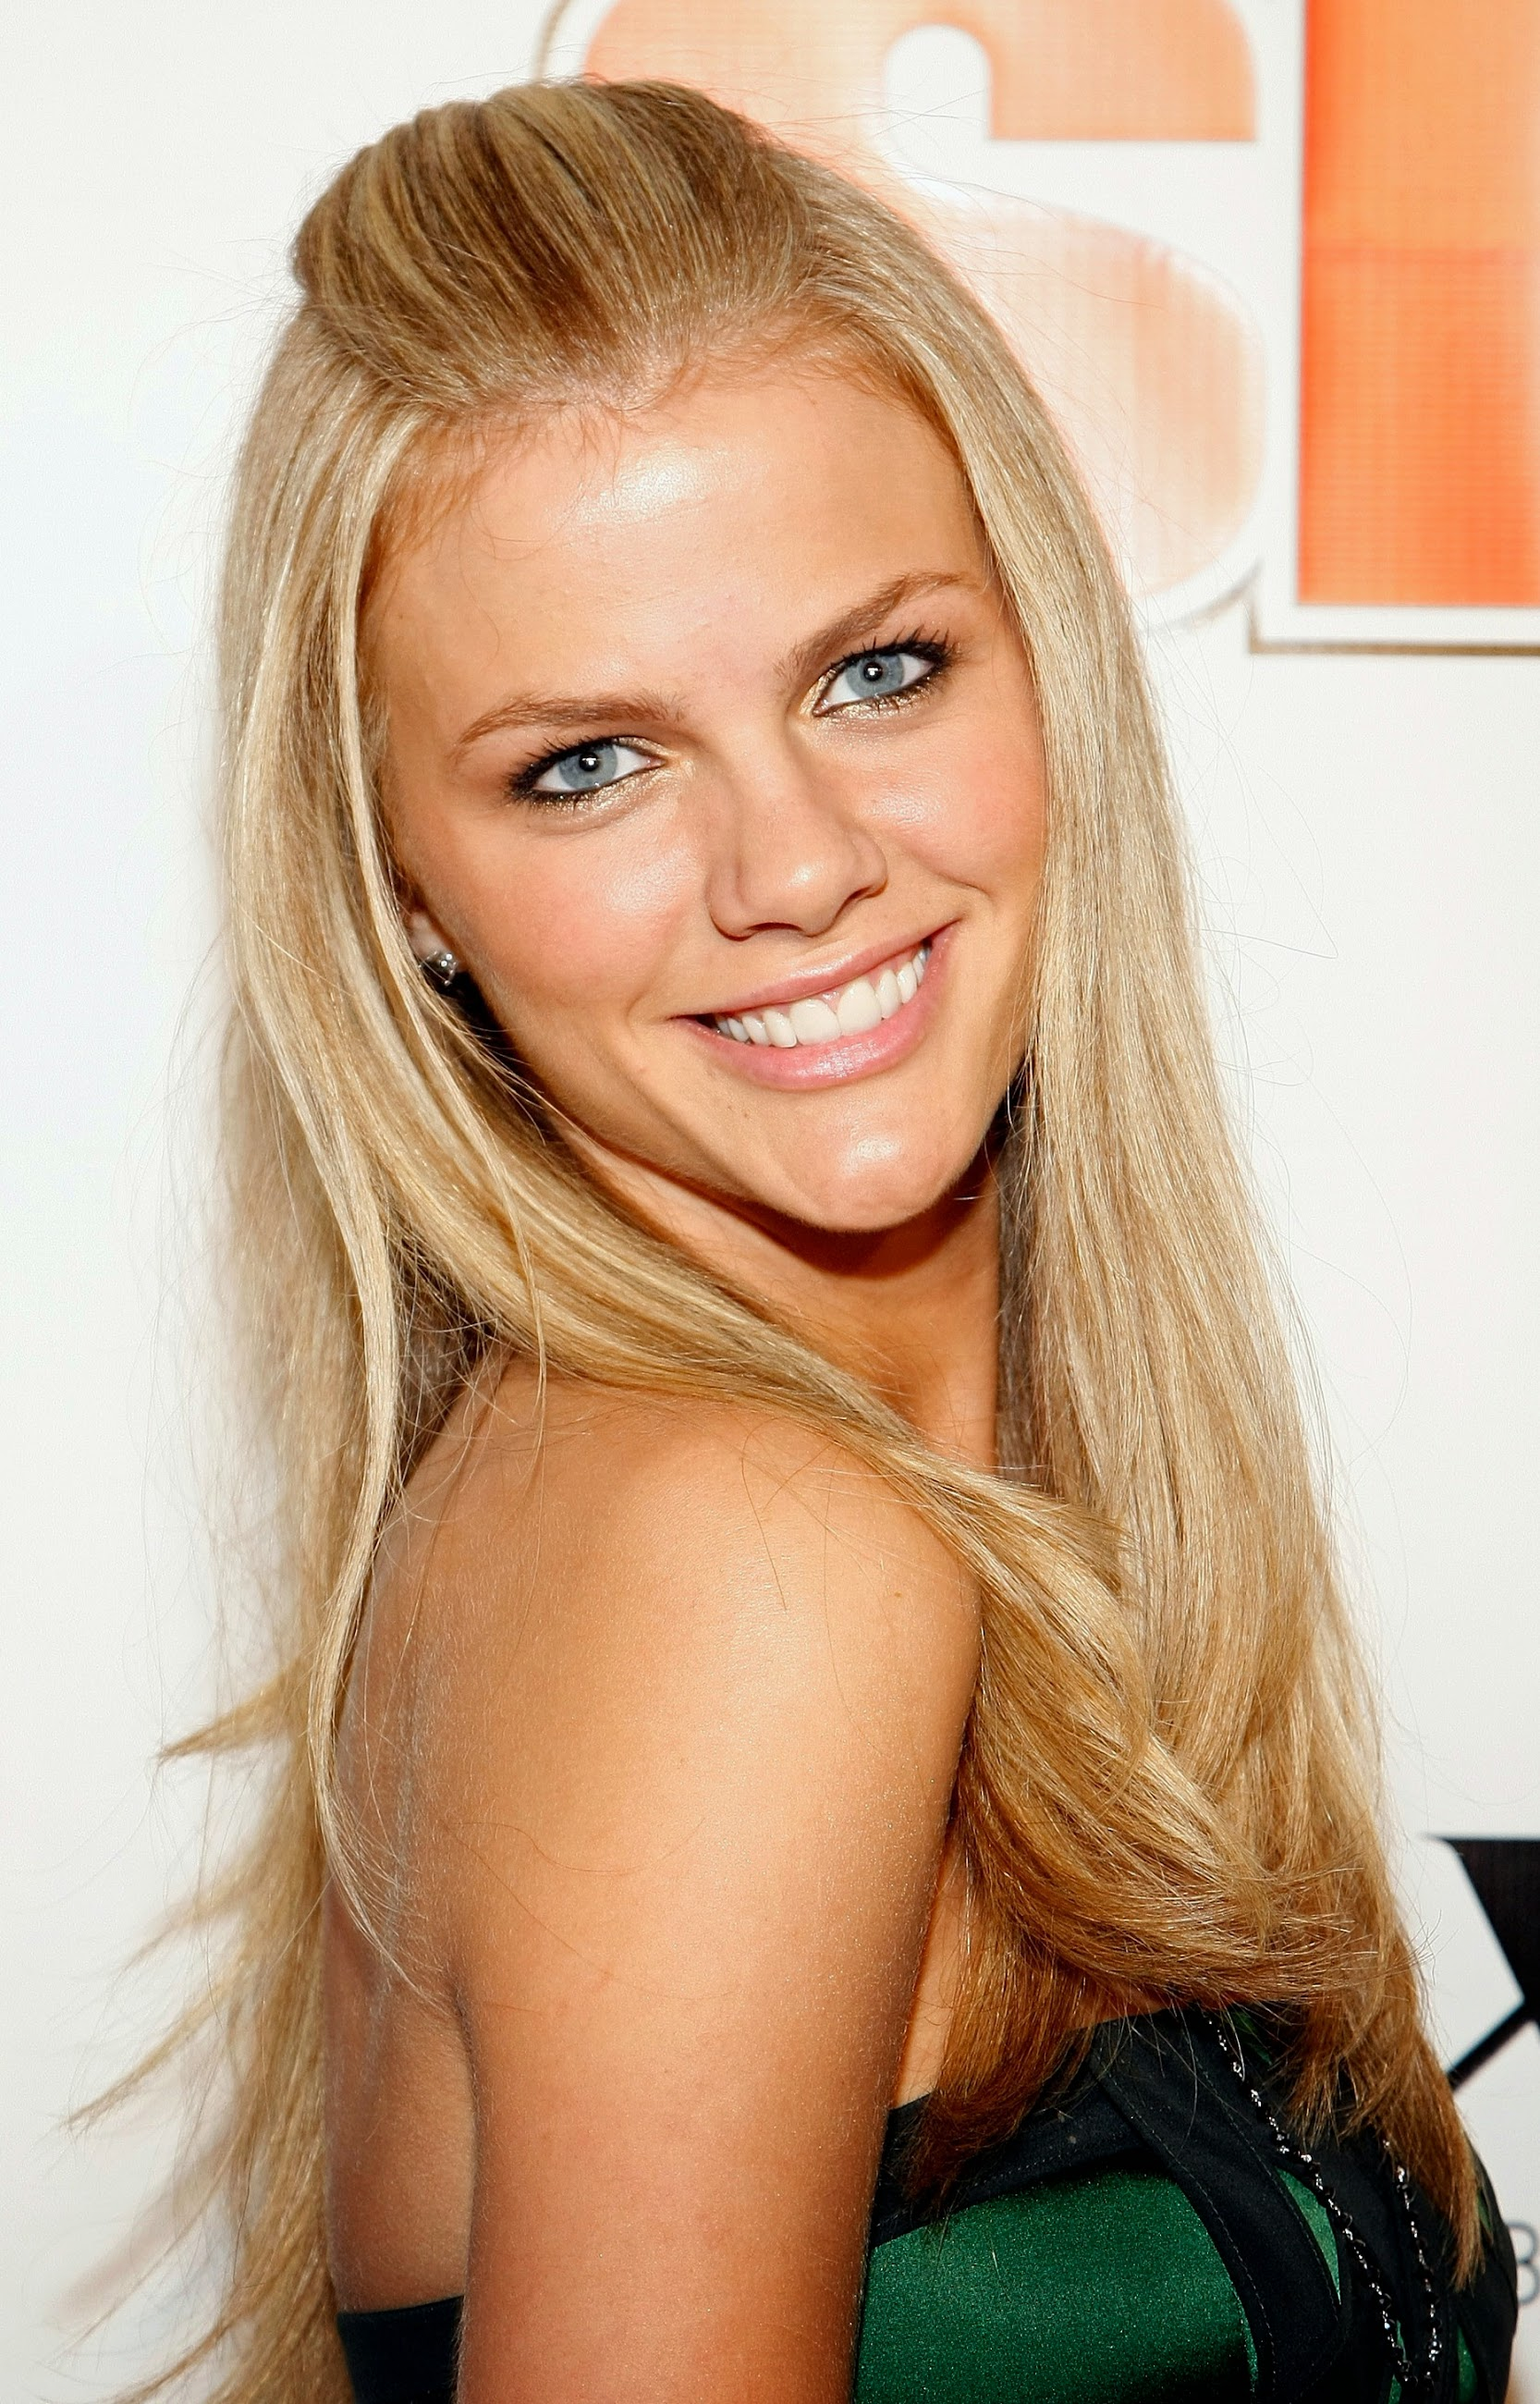 Brooklyn Decker summar... Brooklyn Decker